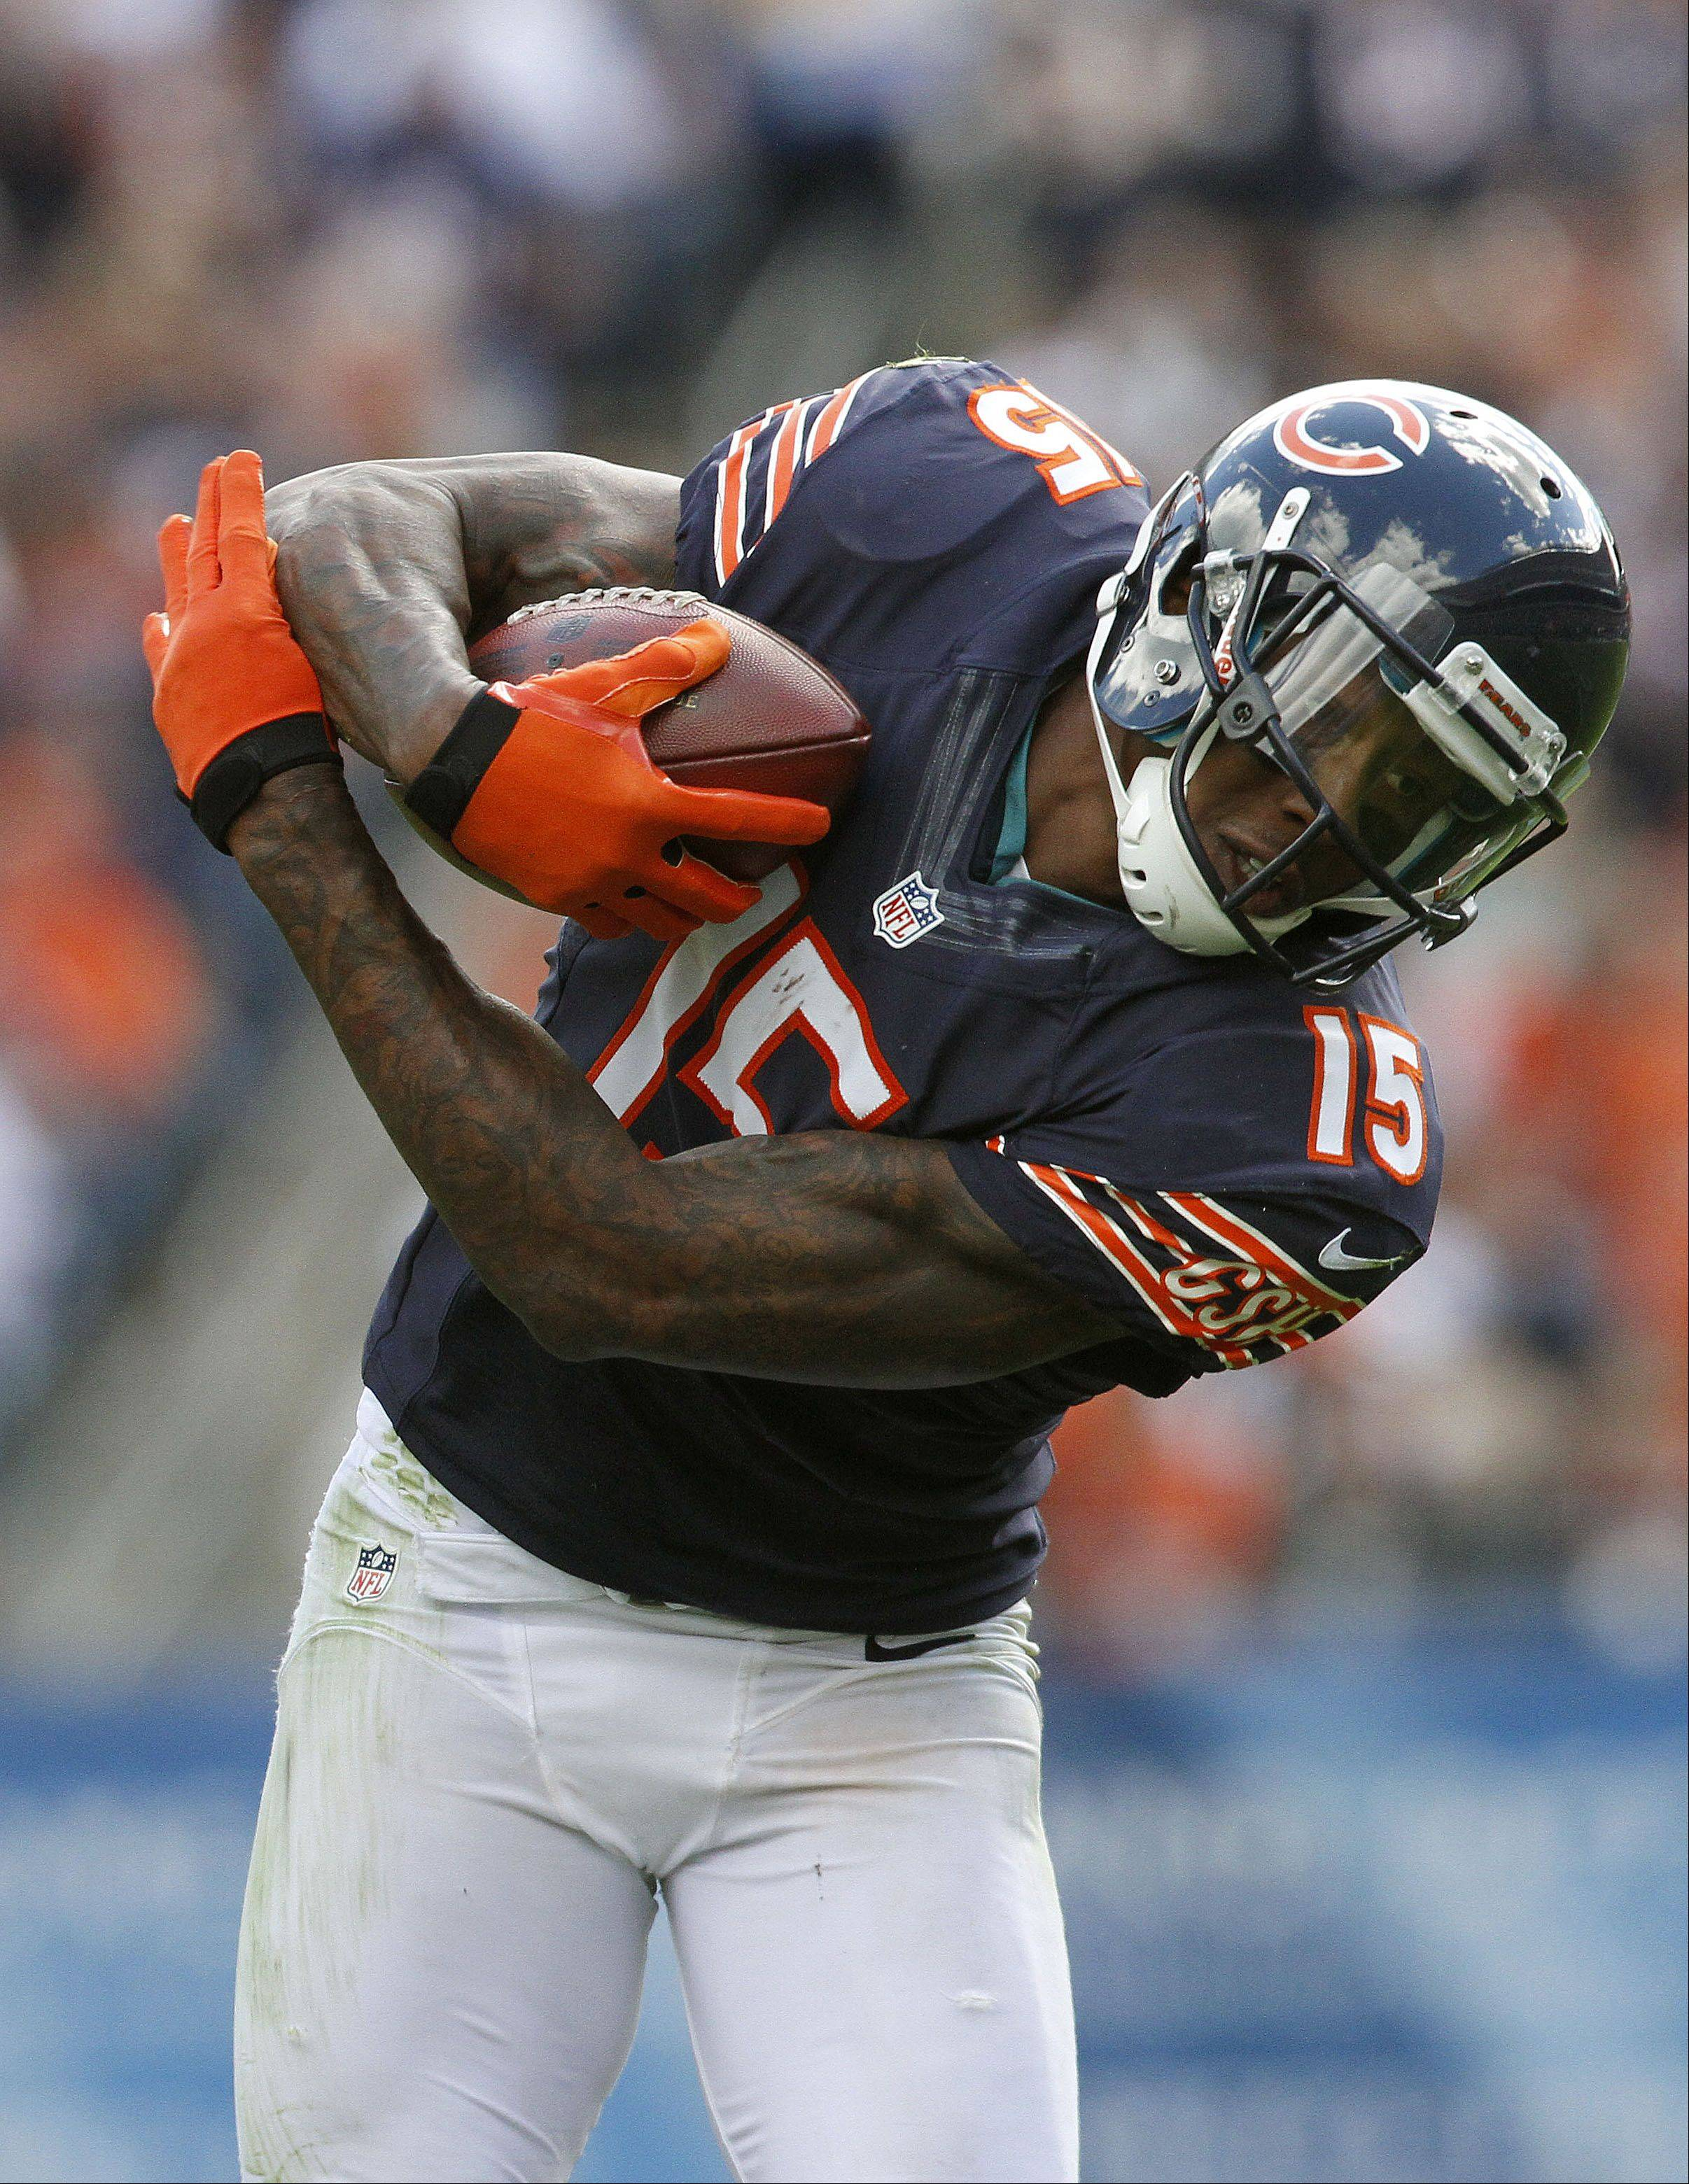 Bears wide receiver Brandon Marshall runs after a catch in the first half against the St. Louis Rams Sunday at Soldier Field in Chicago.